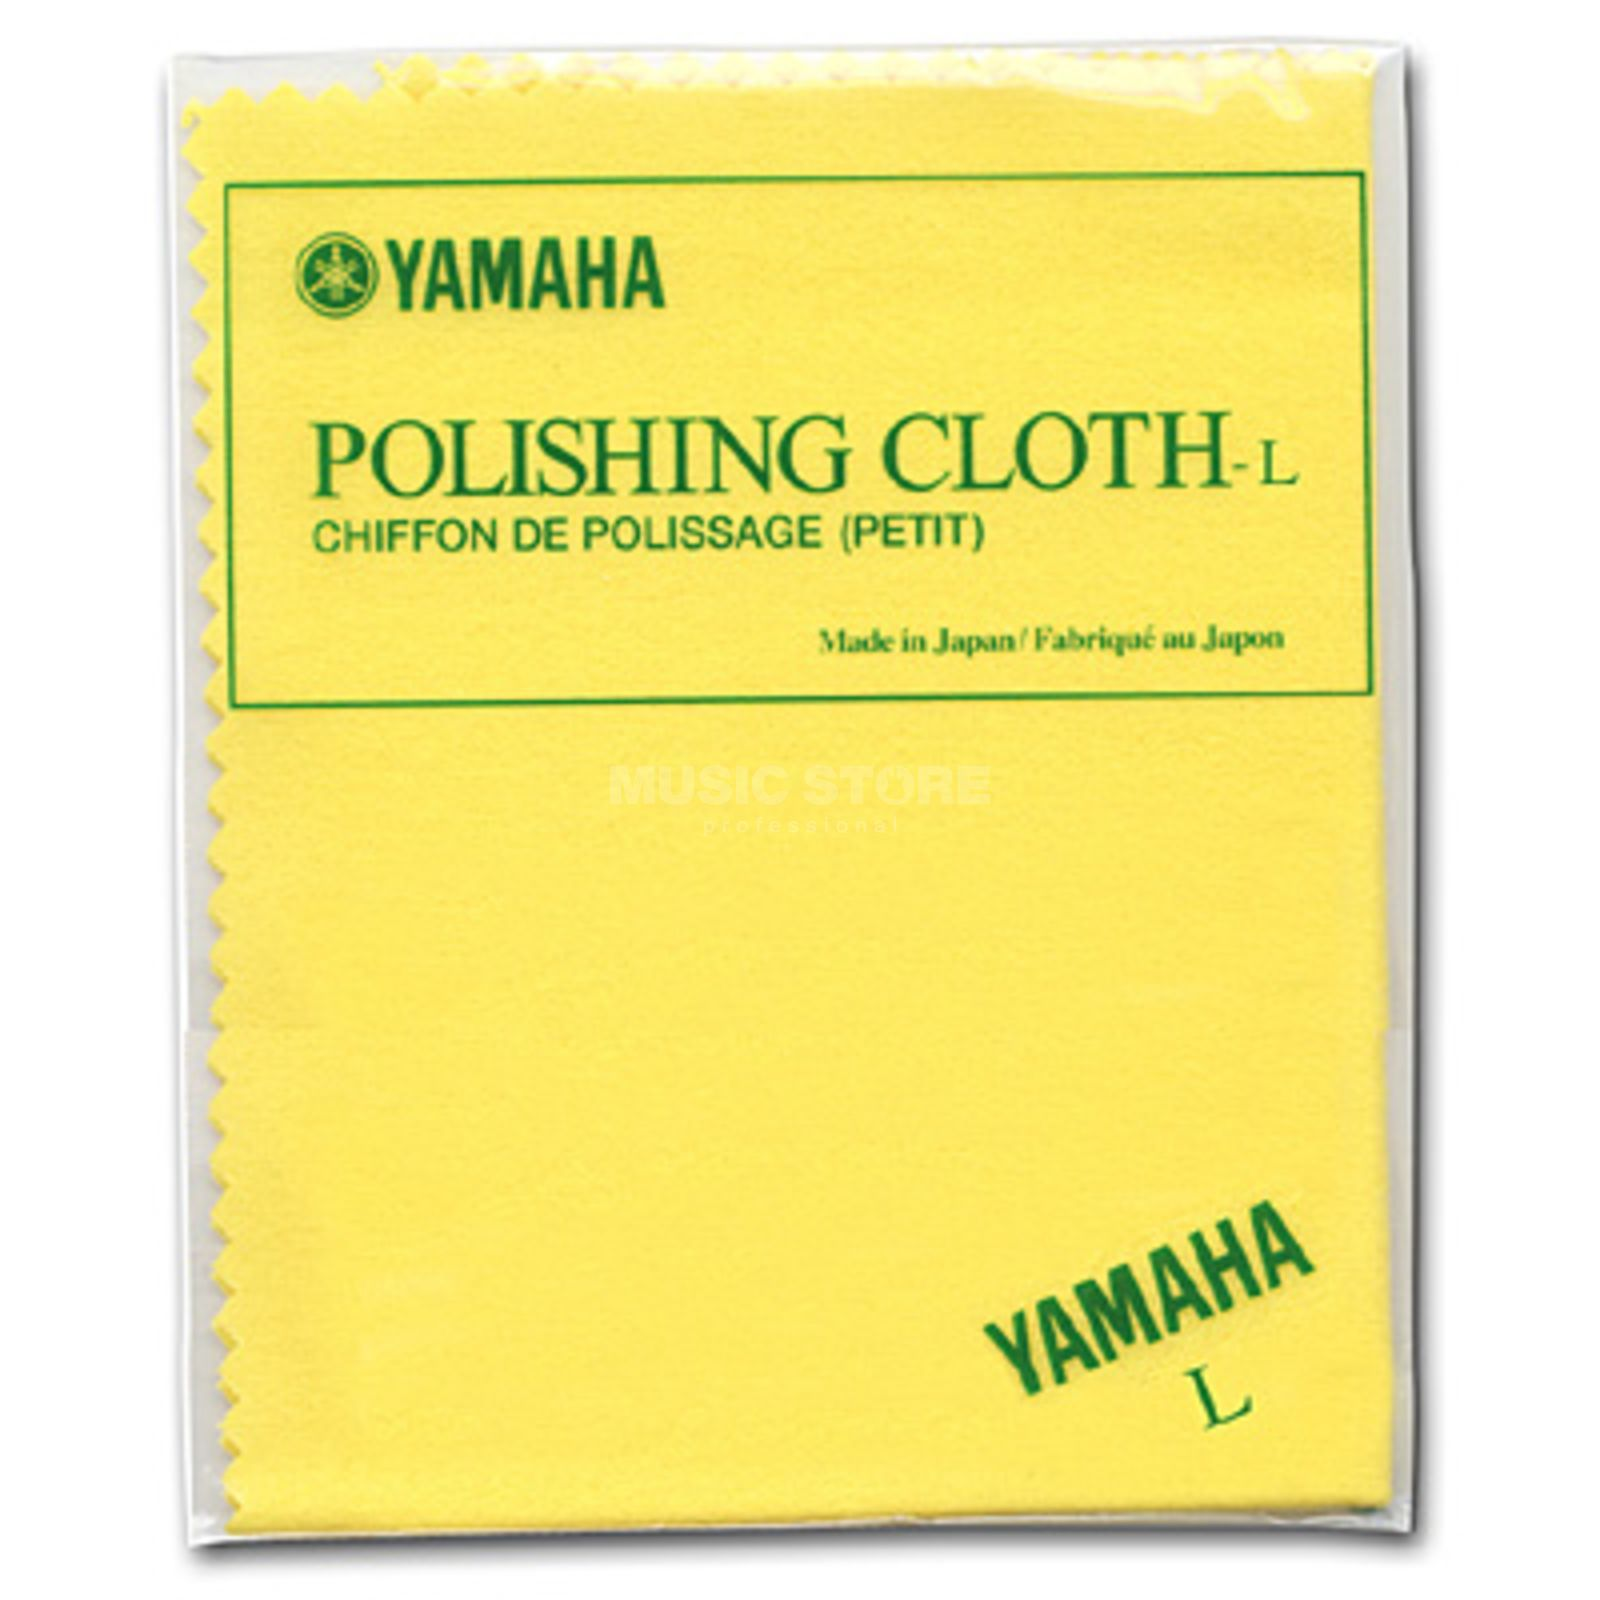 Yamaha Polishing Cloth Size L Yellow Product Image